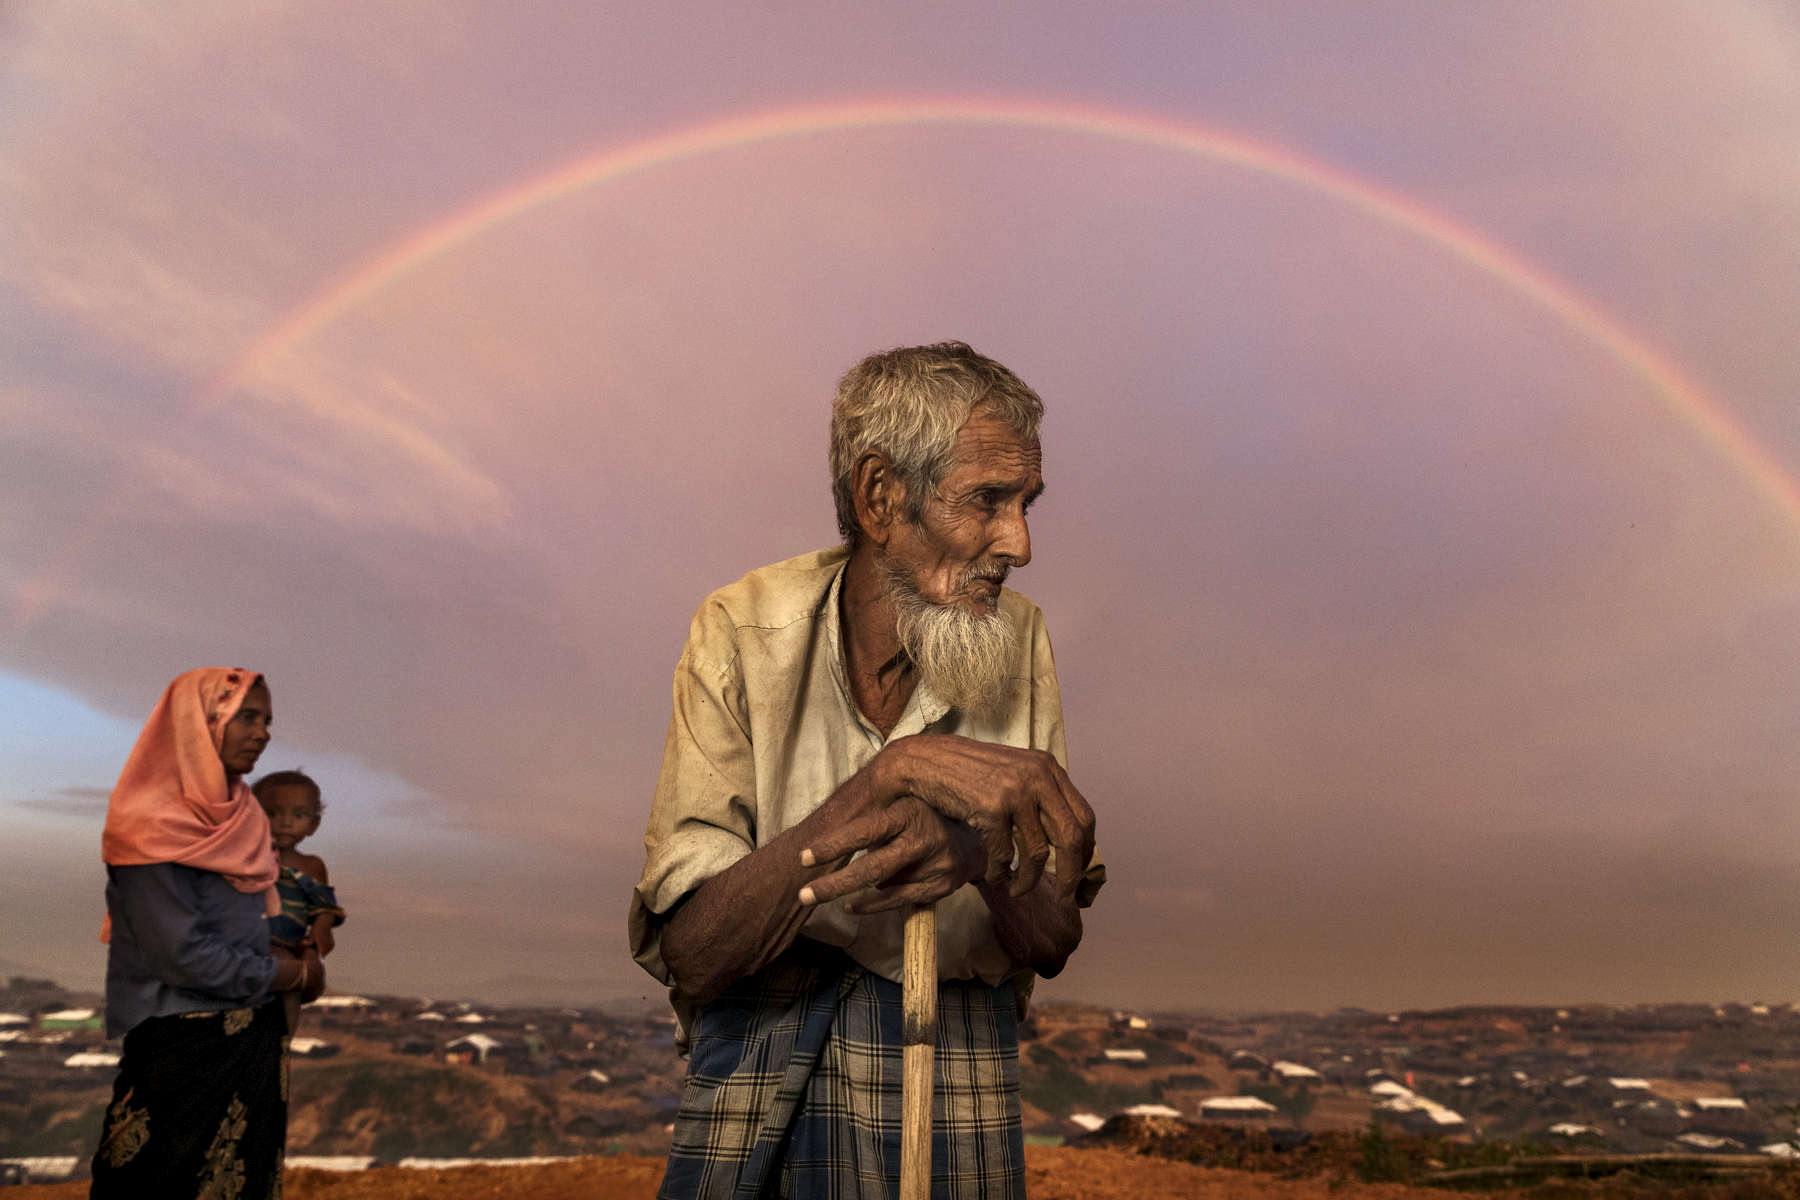 Abu Siddique, 90, stands on a hill overlooking the Kutupalong refugee camp as a rainbow covers the sky. He had to pay people to carry him across the Myanmar border to Bangladesh spending all of his savings.